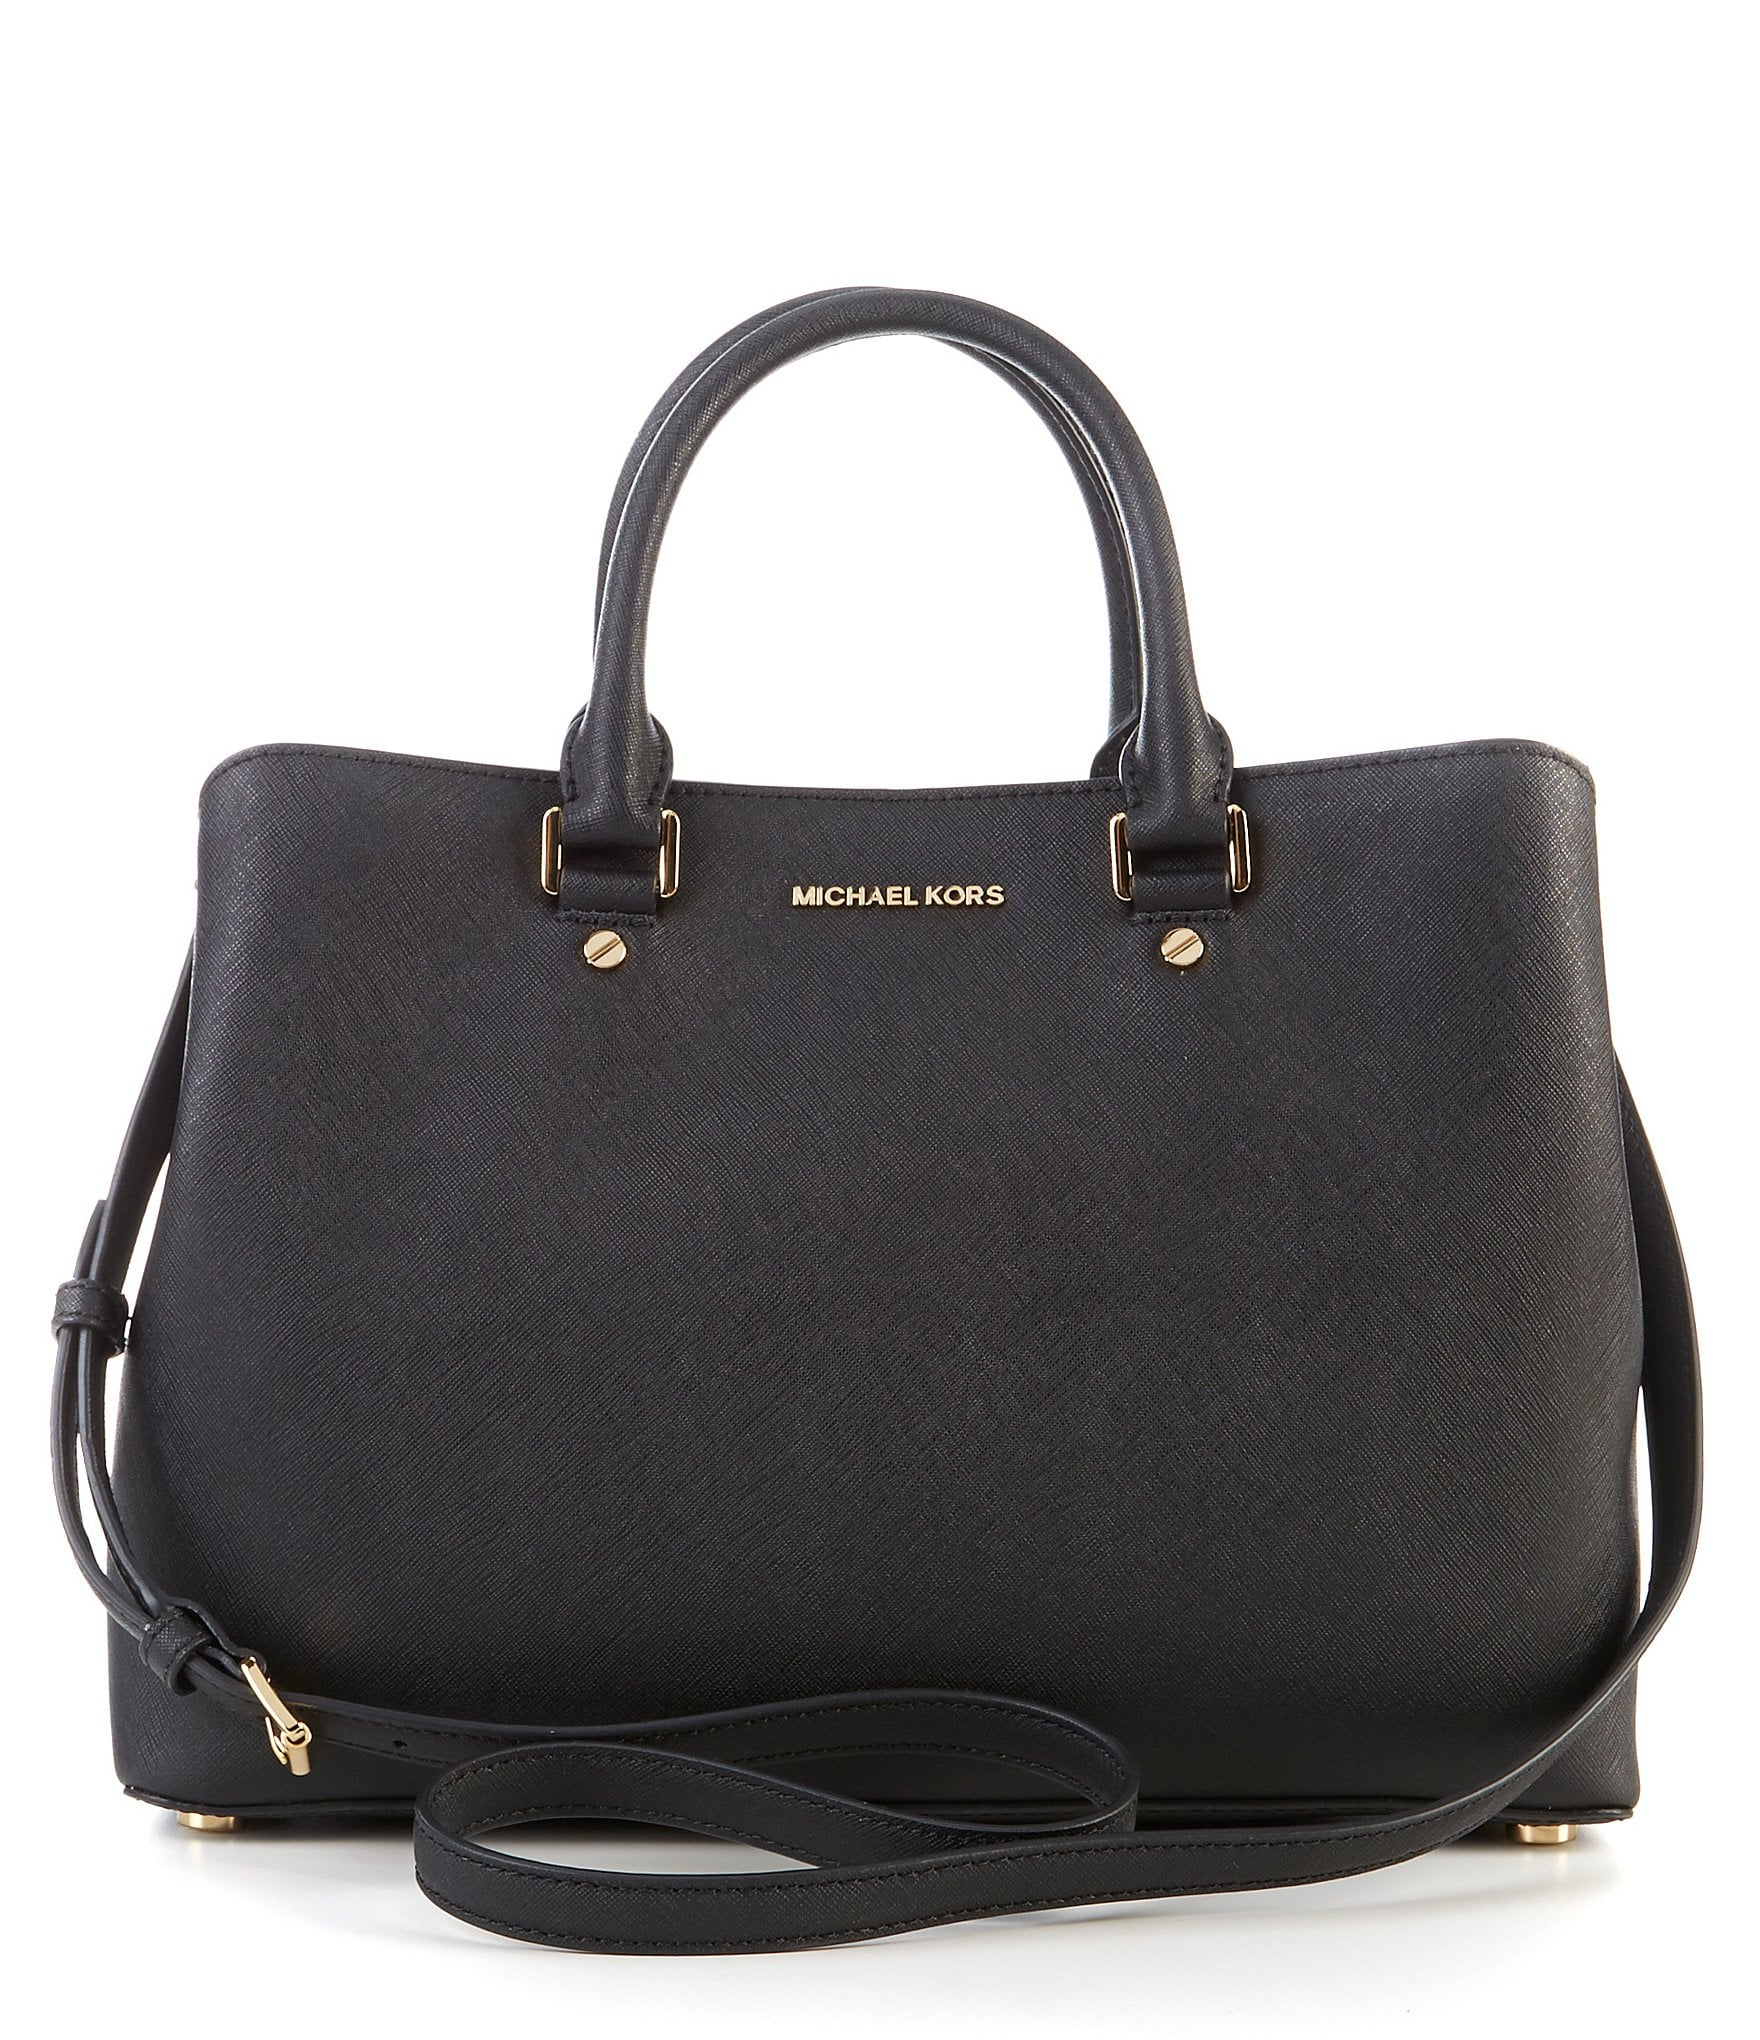 Michael Kors Laukkukoru : Michael kors savannah large satchel dillards